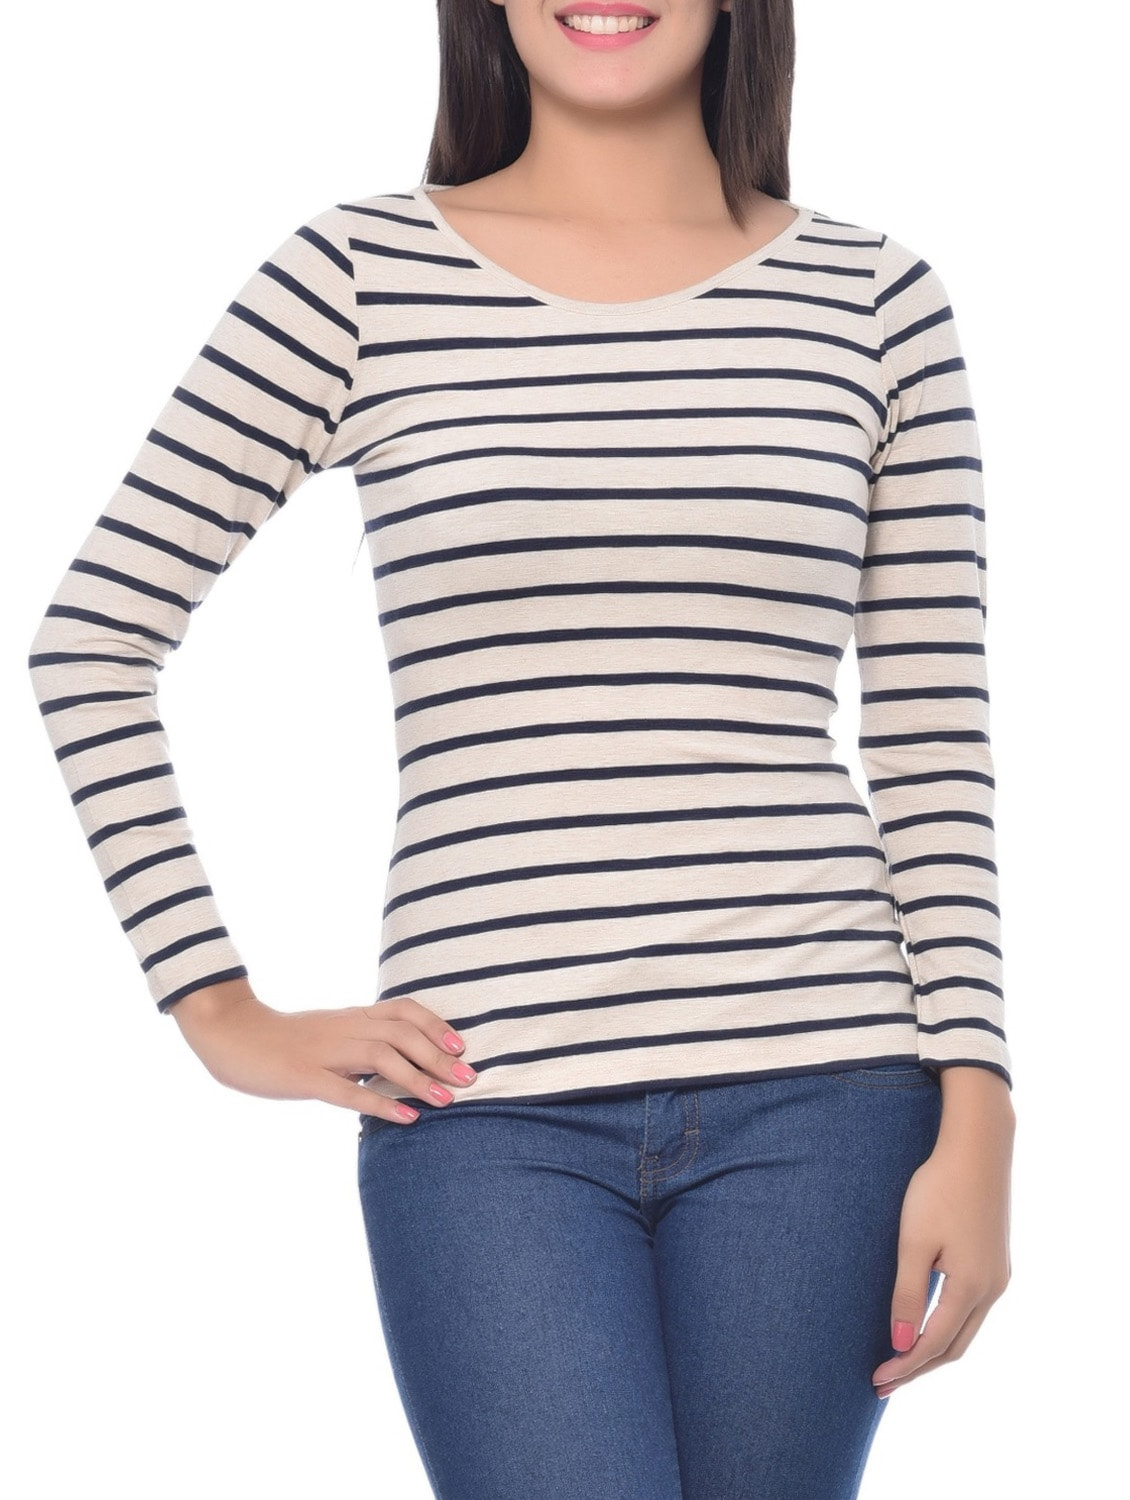 5c5d8ca249 Buy White And Blue Modal Spandex Striped Boat Neck Top for Women from  Frenchtrendz for ₹878 at 18% off | 2019 Limeroad.com